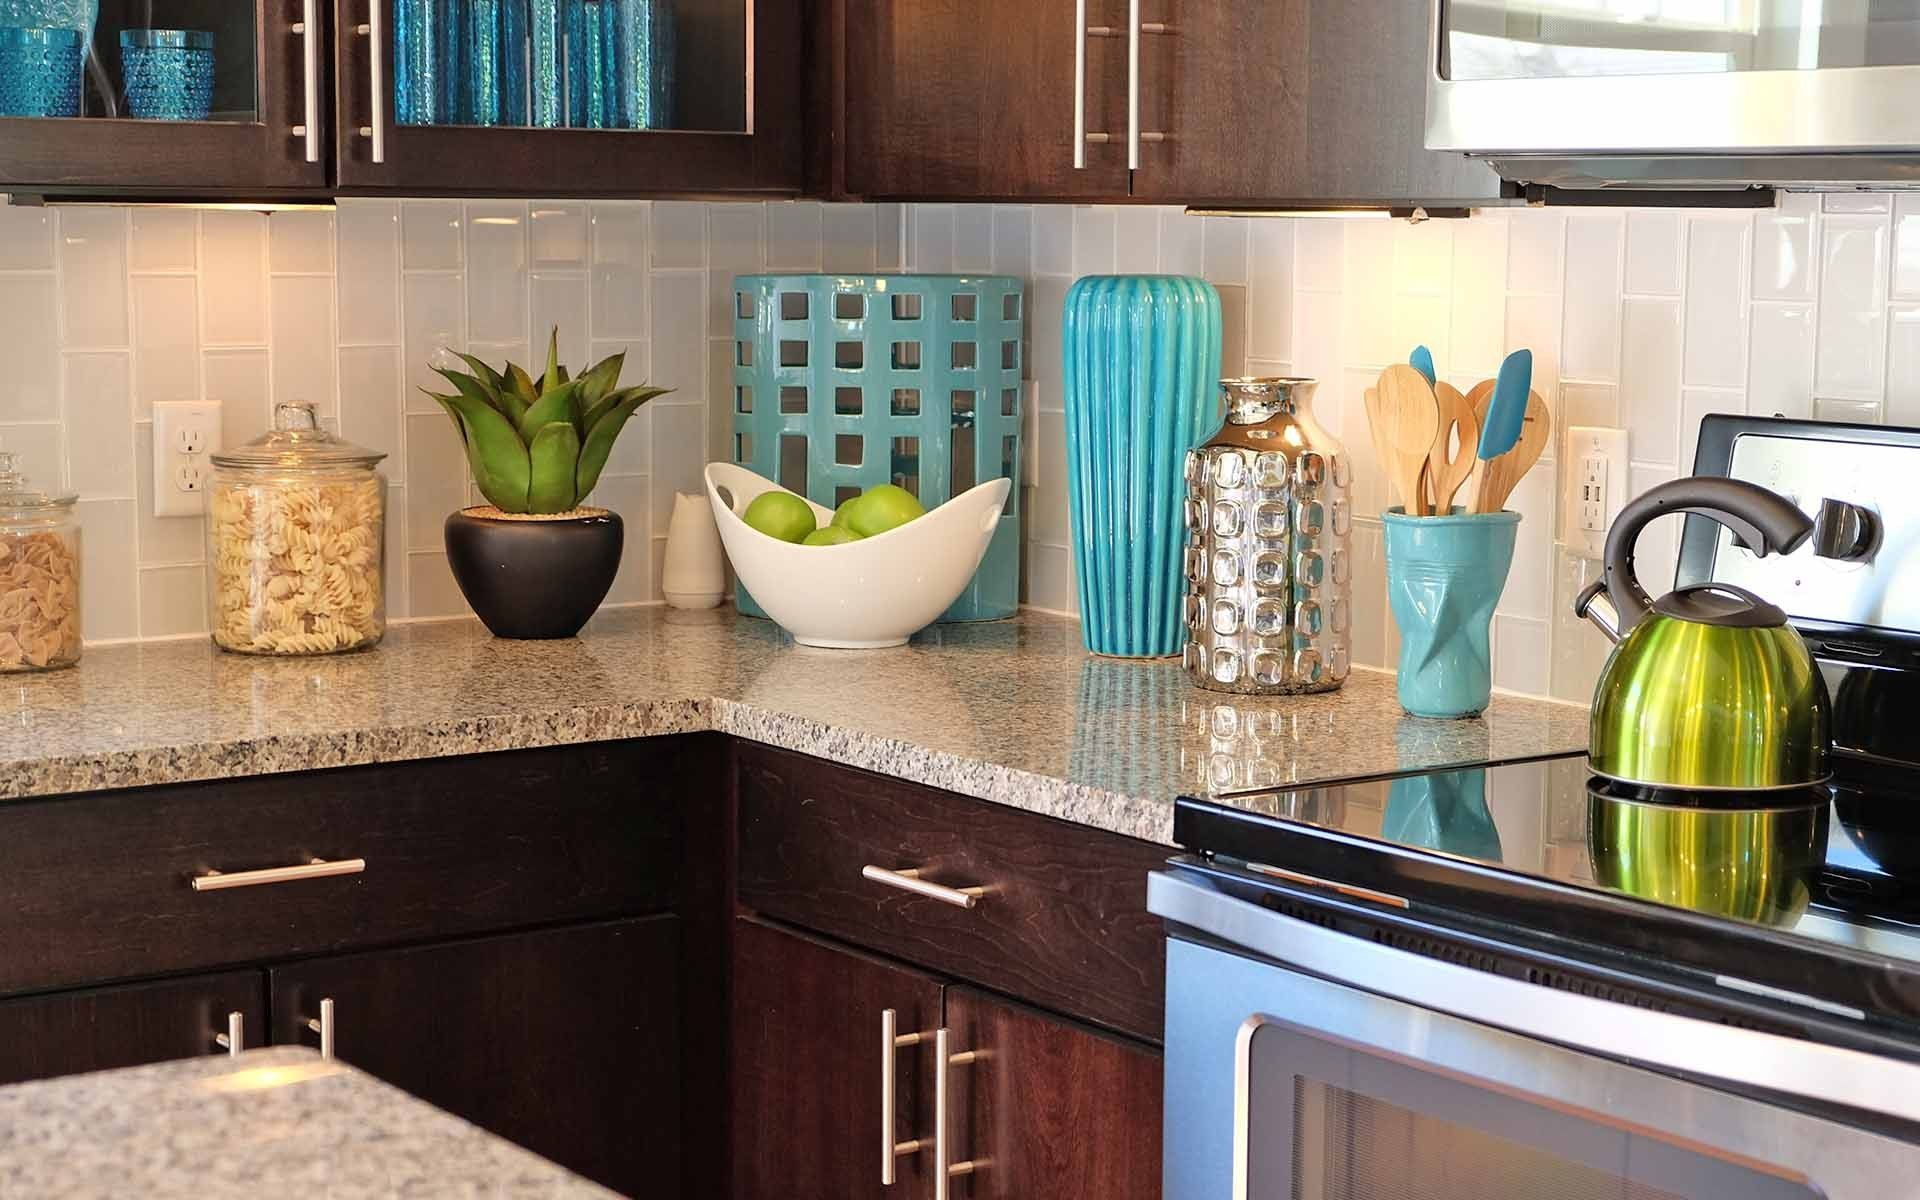 Add Pops Of Color As You Decorate Your New Kitchen Blues And Greens Help Brighten Up A Kitchen W Budget Kitchen Remodel Kitchen Remodel Brown Kitchen Cabinets